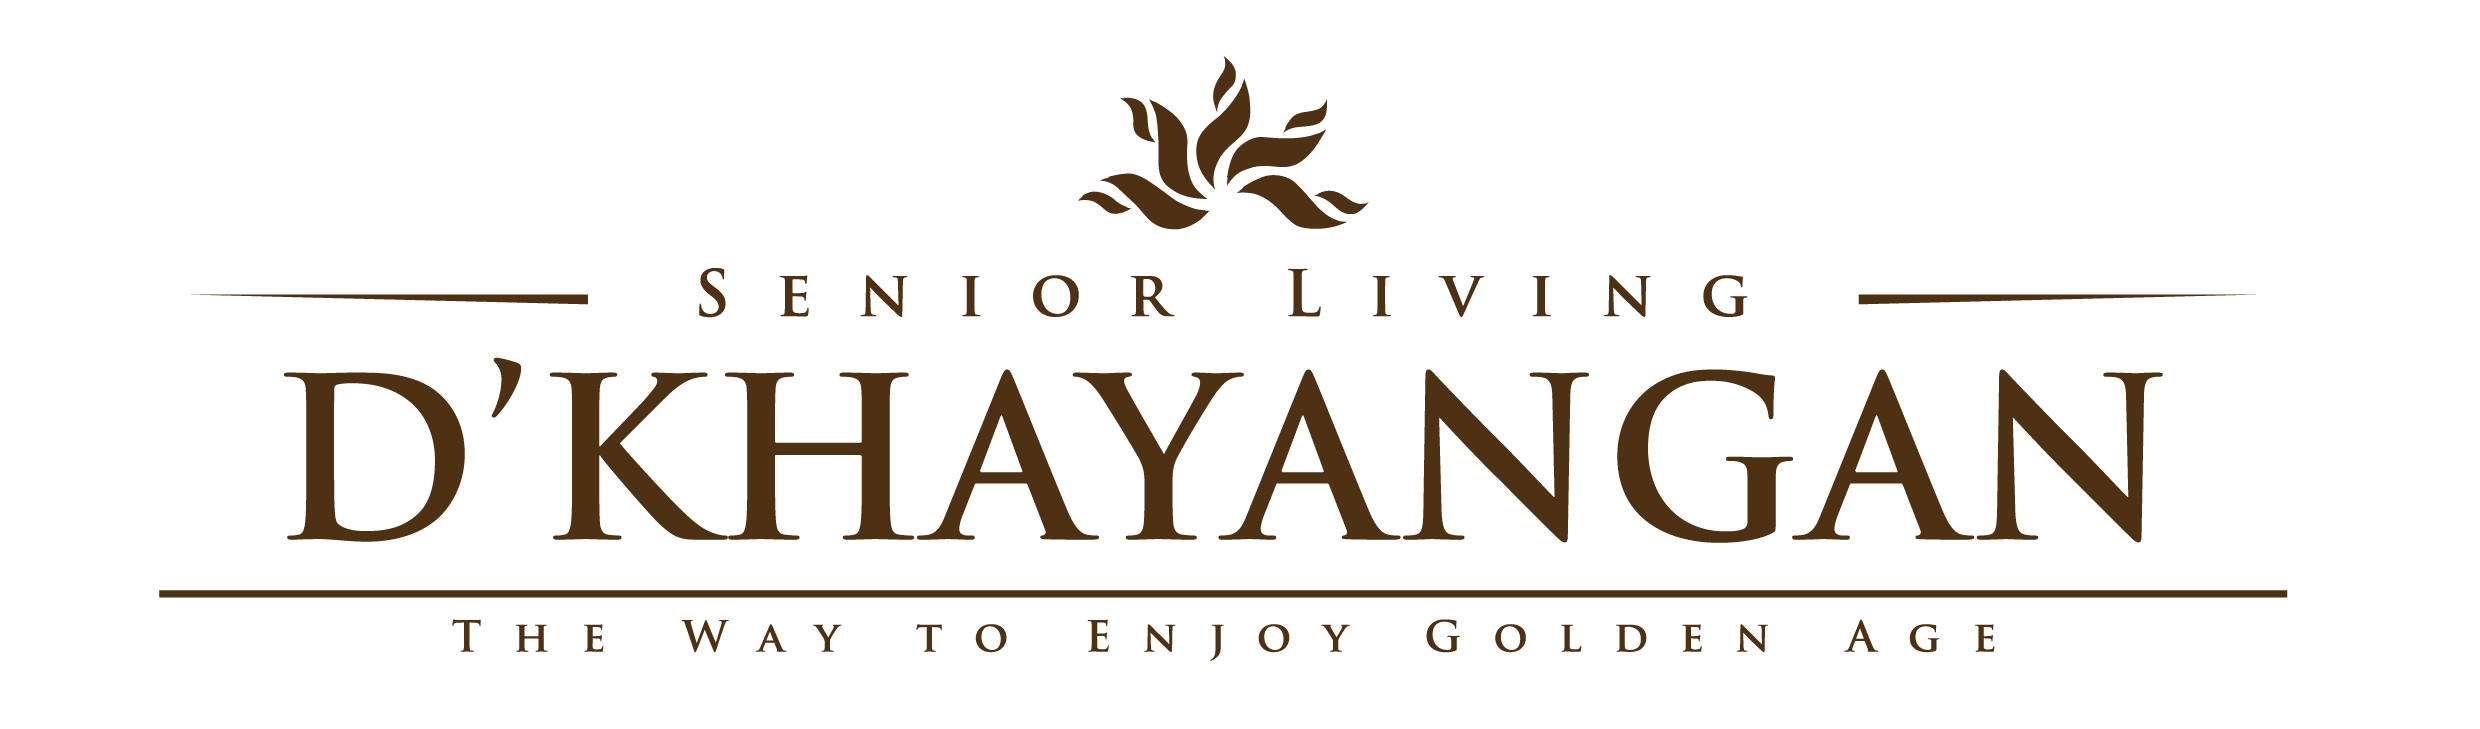 Senior Living DKhayangan